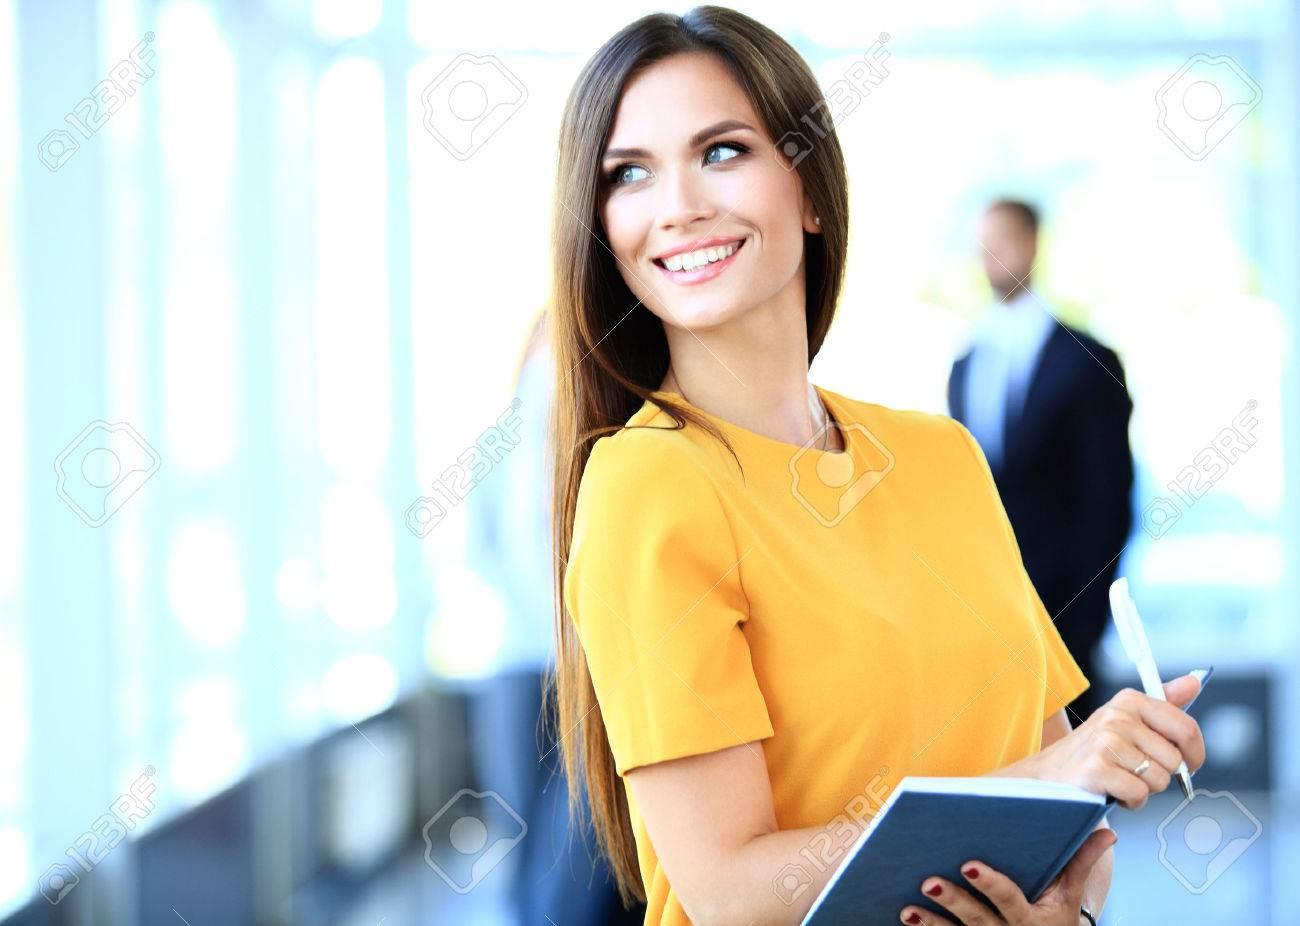 business woman with her staff, people group in background at modern bright office indoors - 48284611